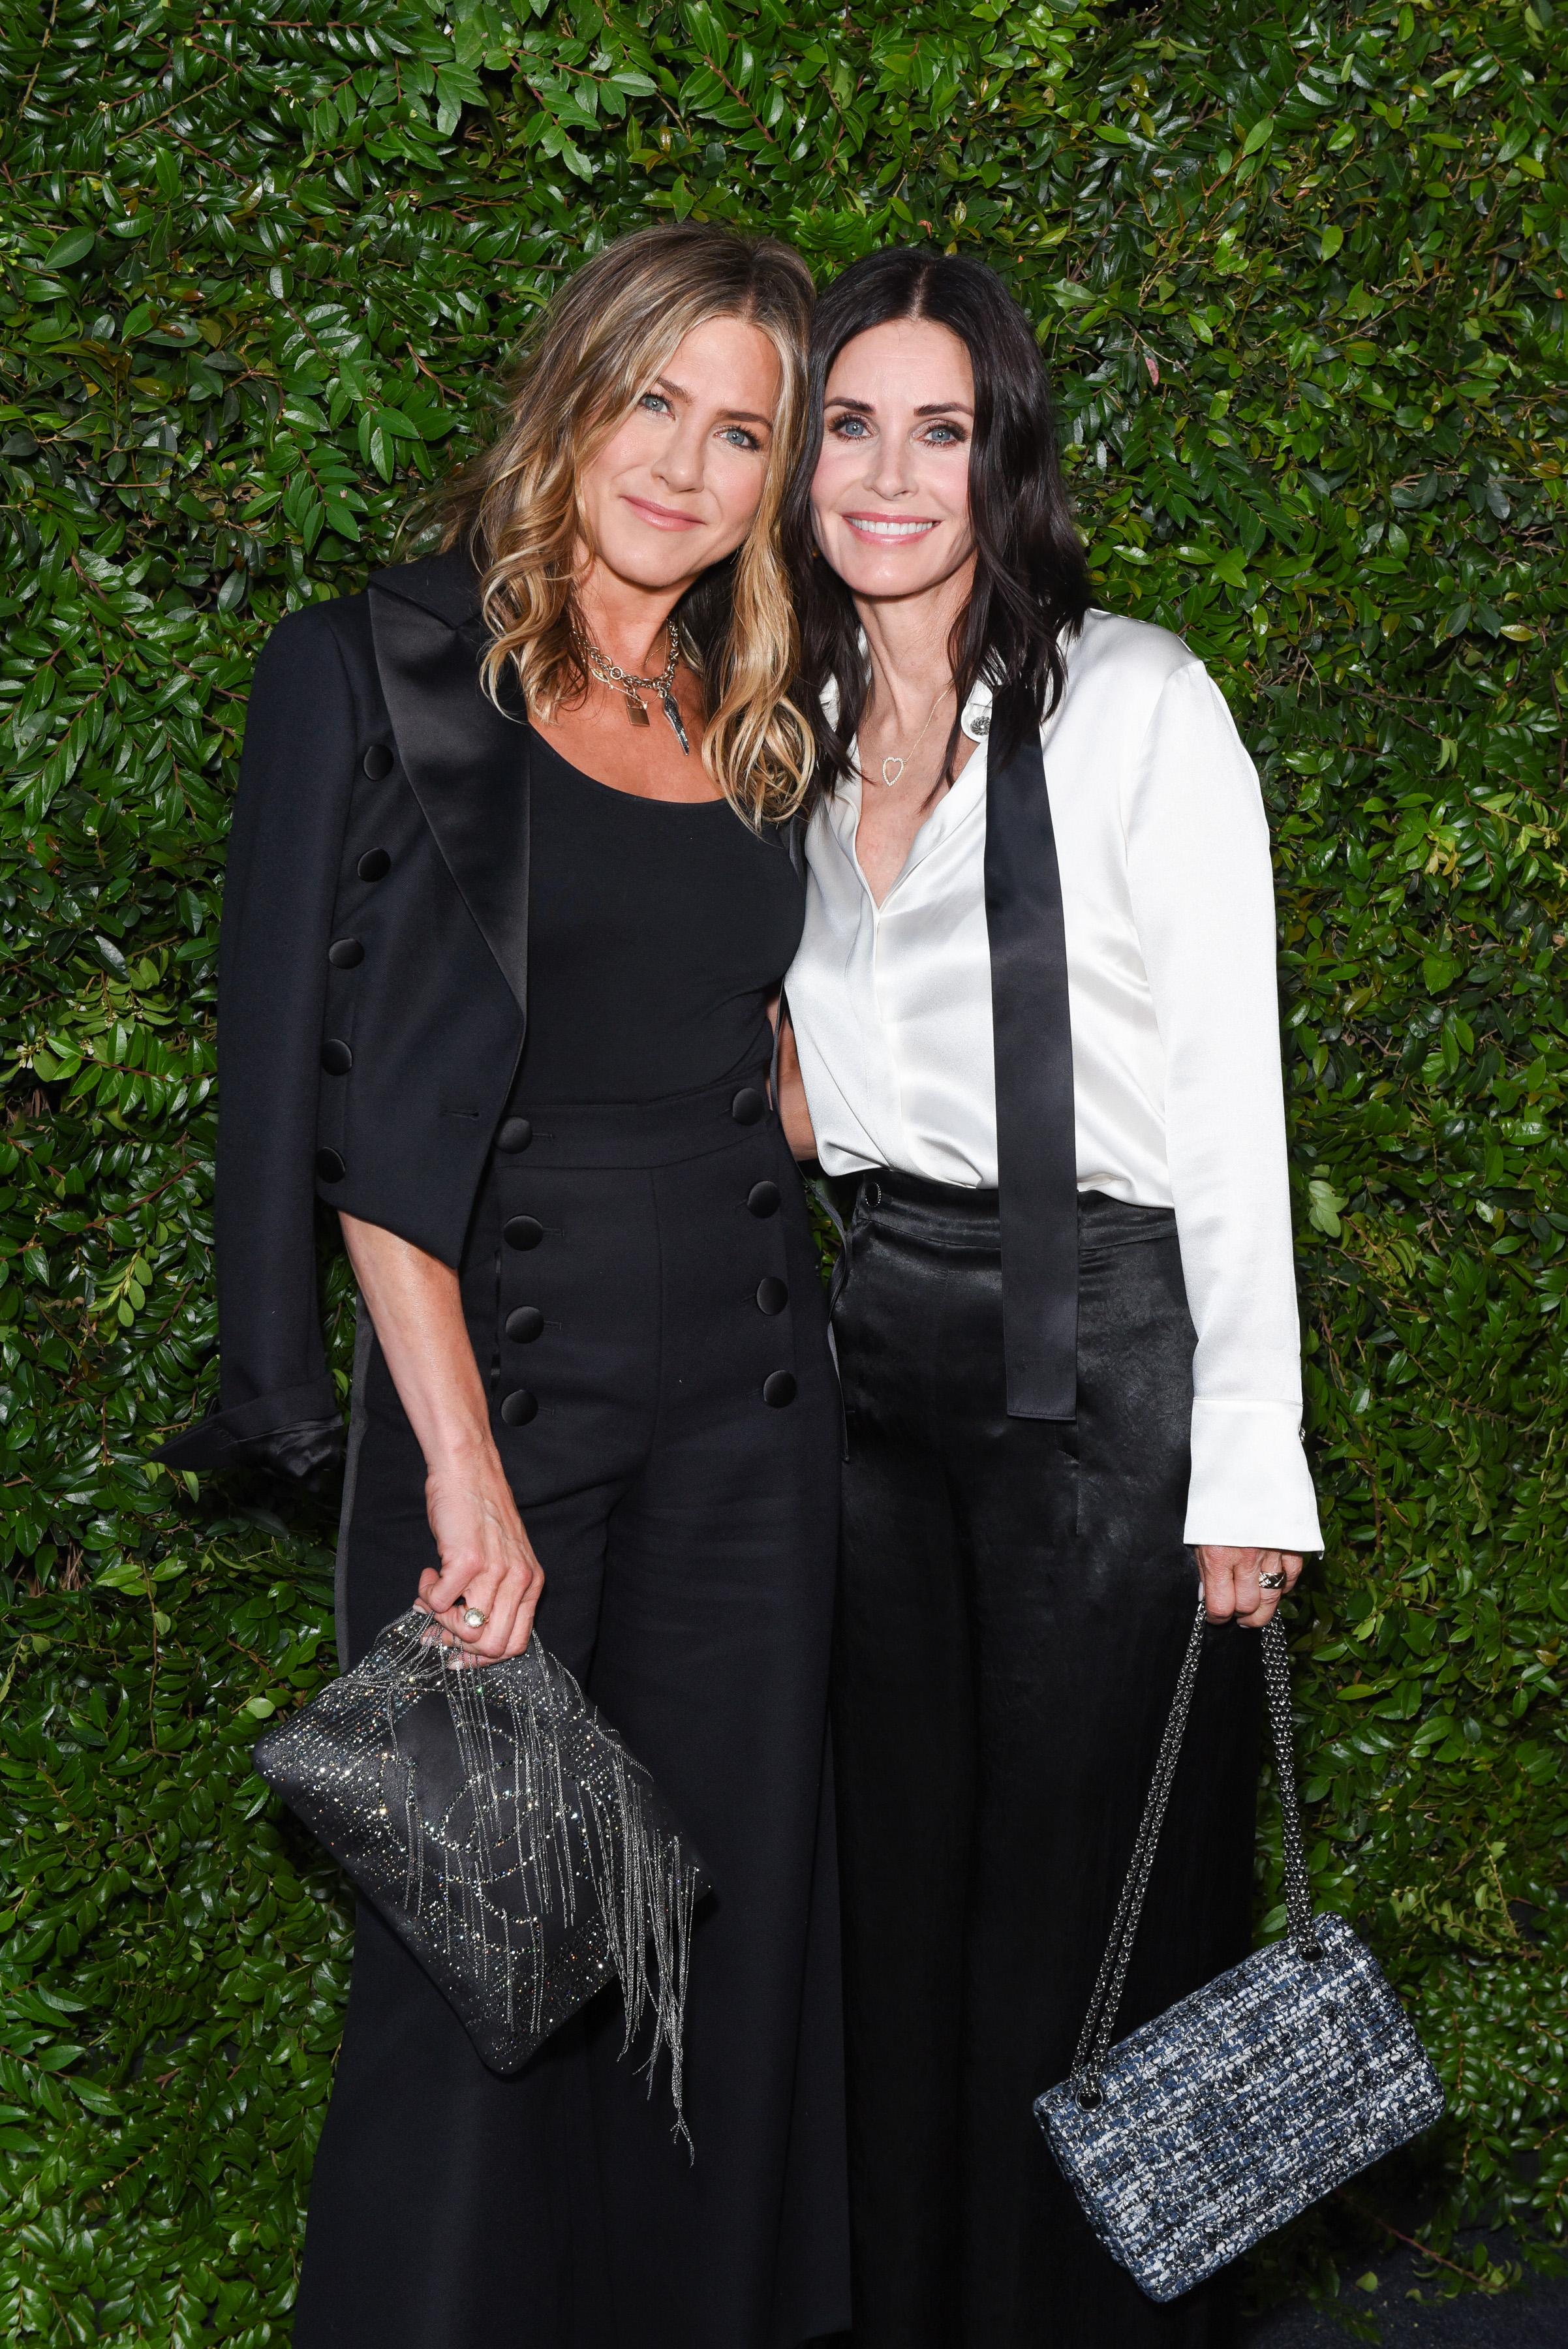 """<p>BFF's <a href=""""https://style.nine.com.au/2017/08/11/15/48/style_jennifer-anistons-best-hairstyles"""" target=""""_blank"""">JenniferAniston</a> and Courteney Cox ruled the style set in co-ordinating outfits overnight at a dinner hosted by <a href=""""https://style.nine.com.au/2018/05/18/11/07/princess-diana-chanel"""" target=""""_blank"""">Chanel</a>.<br /> <br /> The former <em>Friends</em> co-stars lead the sartorial stand-outs in head-to-toe Chanel. </p> <p>Aniston sported a double breasted pantsuit while Cox donned an equally chic outfit made of black wide-leg silk pants and white shirt, complete with a black tie draped around her collar.<br /> <br /> The actresses were there to celebrate the Majestic Oceansdinnerhosted by fashion house Chanel, a benefit drawing attention to the plight of the ocean ahead of World Ocean's Day on June 8.</p> <p>The besties were joined by other A-listers including Julia Roberts, Cindy Crawford and Barbara Streisand.</p> <p>Click through to take a look at the stars who brought their fashion A-game.</p>"""